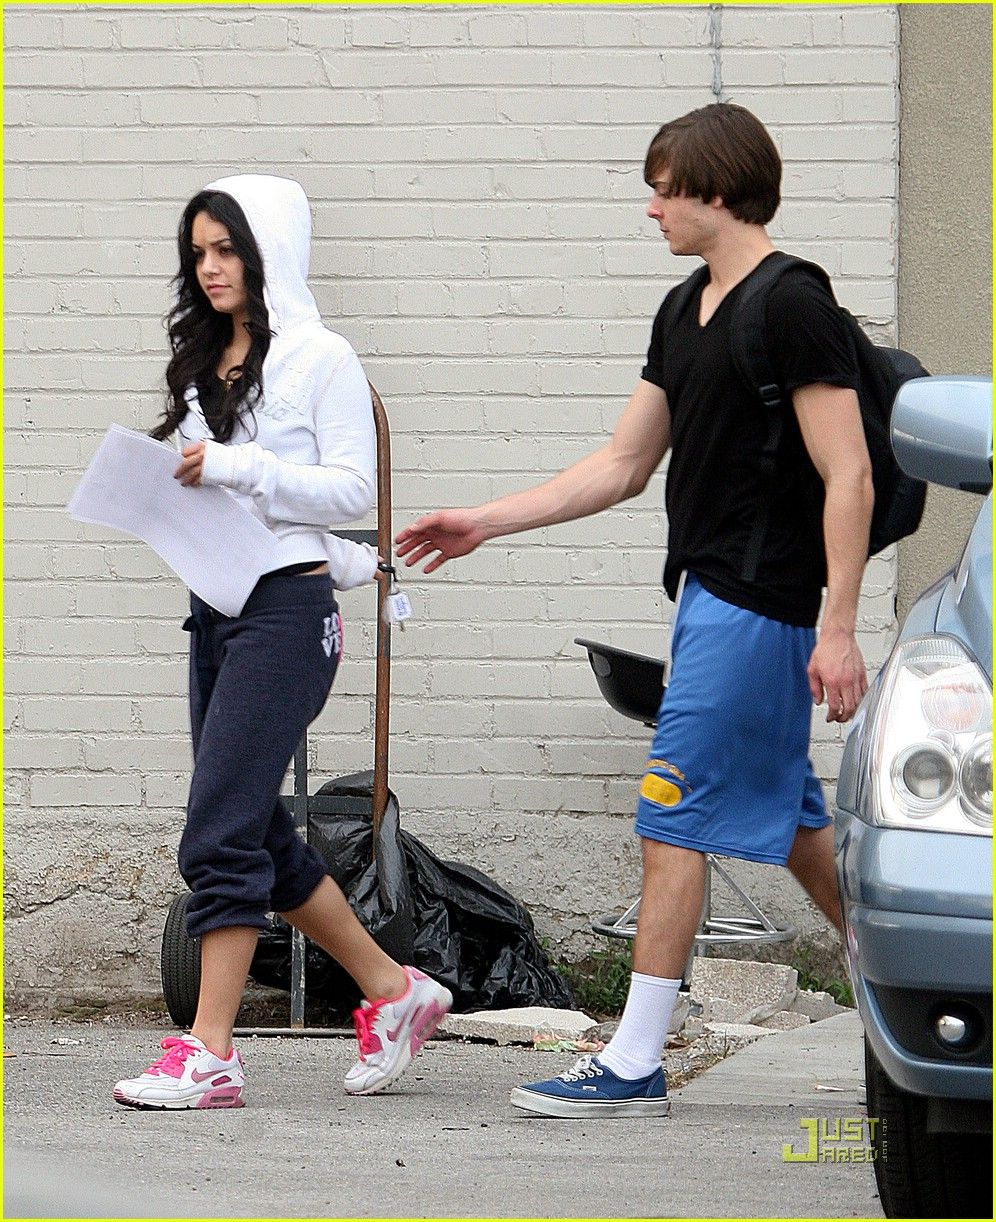 Zanessa at dance rehearsals 4 in utah hd wallpaper and background photos of zanessa candid picture for fans of zac efron vanessa hudgens images